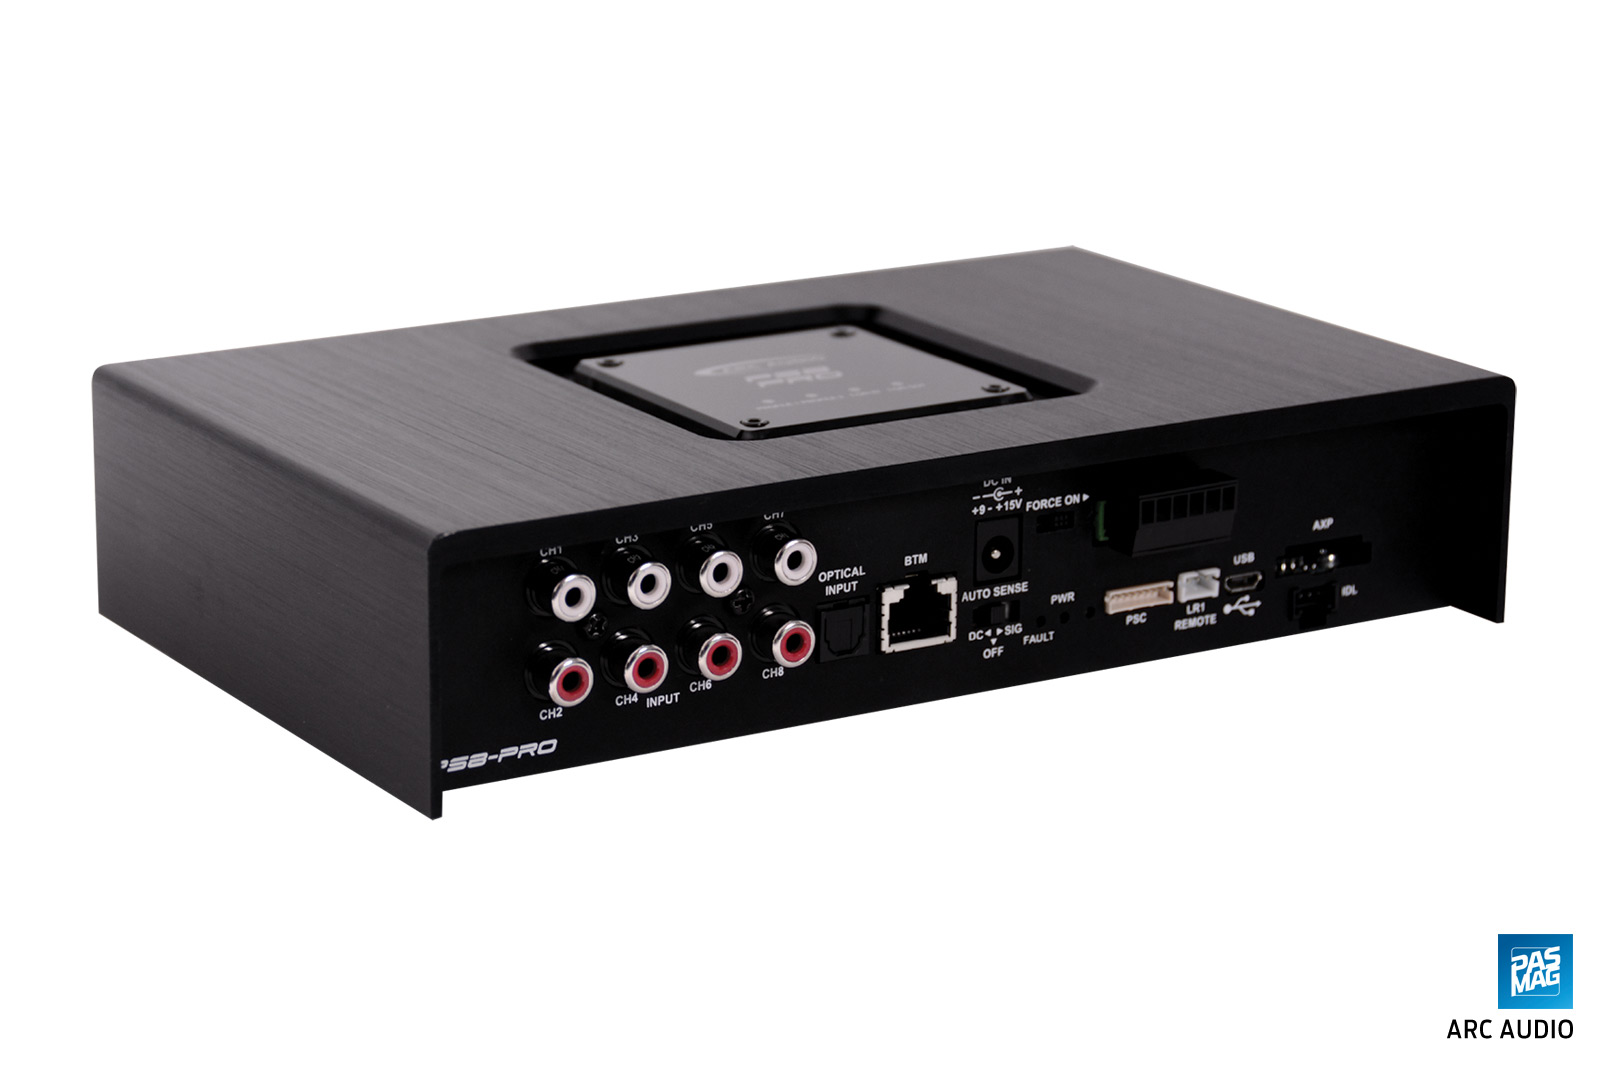 Arc Audio PS8 Pro5